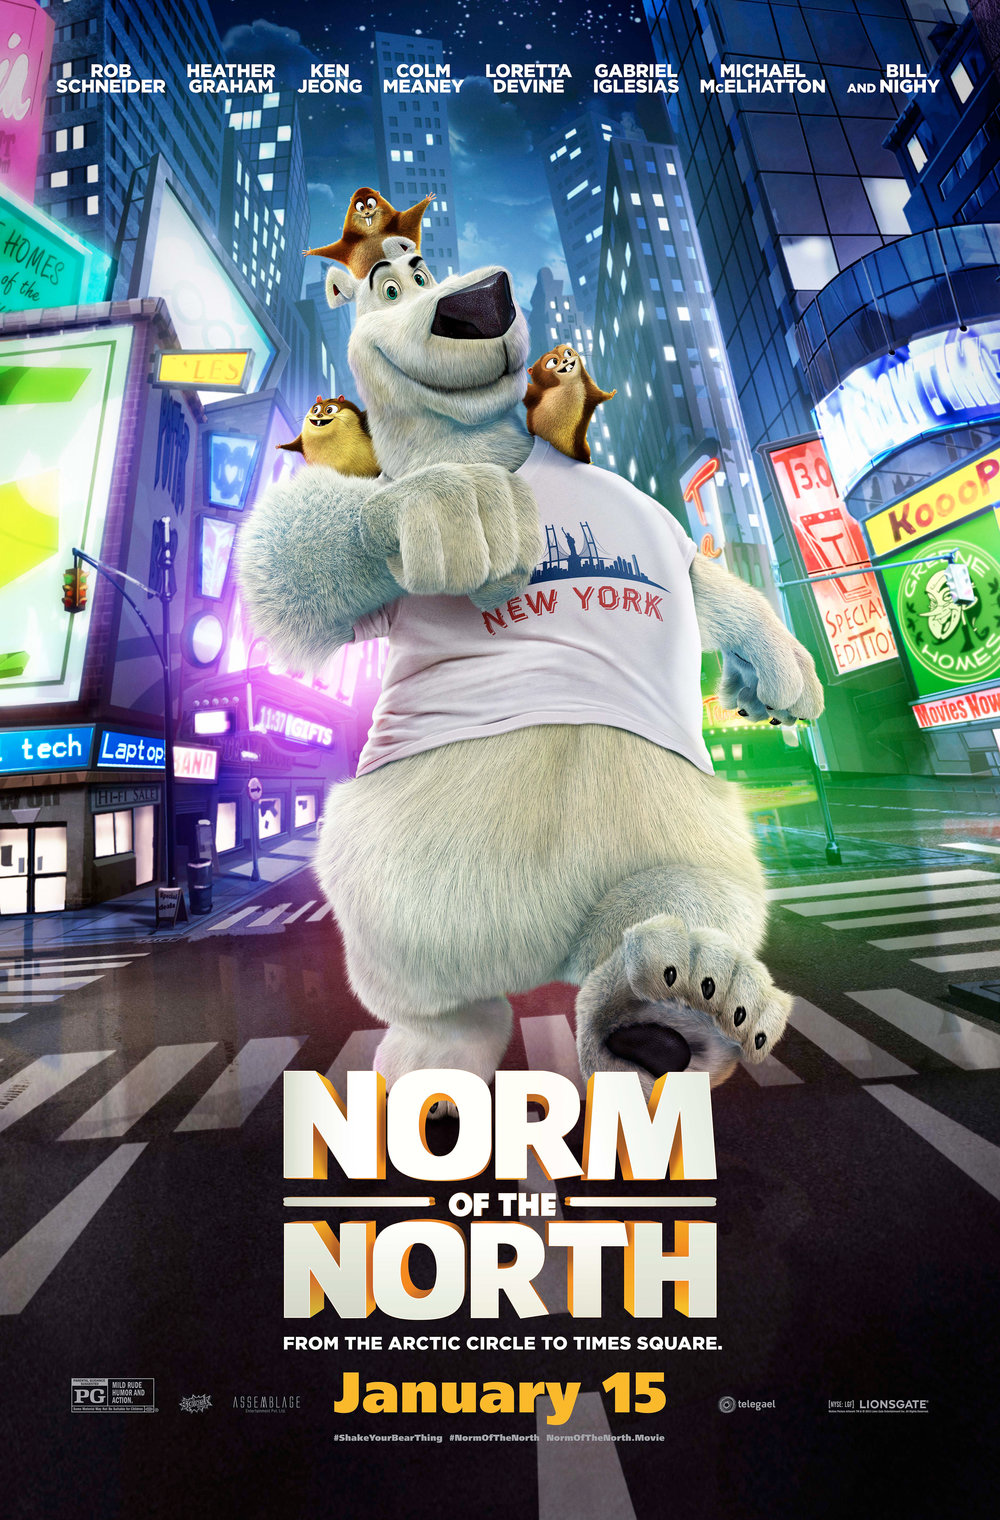 NORM OF THE NORTH - Telegael's dedicated team was responsible for production design, voice records of two main characters, music composition and picture and sound post production.A polar bear of many words, Norm's greatest gripe is simple: there is no room for tourists in the Arctic. But when a maniacal developer threatens to build luxury condos in his own backyard, Norm does what all normal polar bears would do … he heads to New York City to stop it. With a cast of ragtag lemmings at his side, Norm takes on the Big Apple, big business, and a big identity crisis to save the day.The film features the voices of Rob Schneider, Heather Graham, Ken Jeong, Gabriel Iglesias, Loretta Devine, Michael McElhatton, Colm Meaney and Bill Nighy.Year 2016Duration 95 minsProduction Partners Telegael, Splash Entertainment, Assemblage Entertainment, Lionsgate EntertainmentGenre CGI Animation